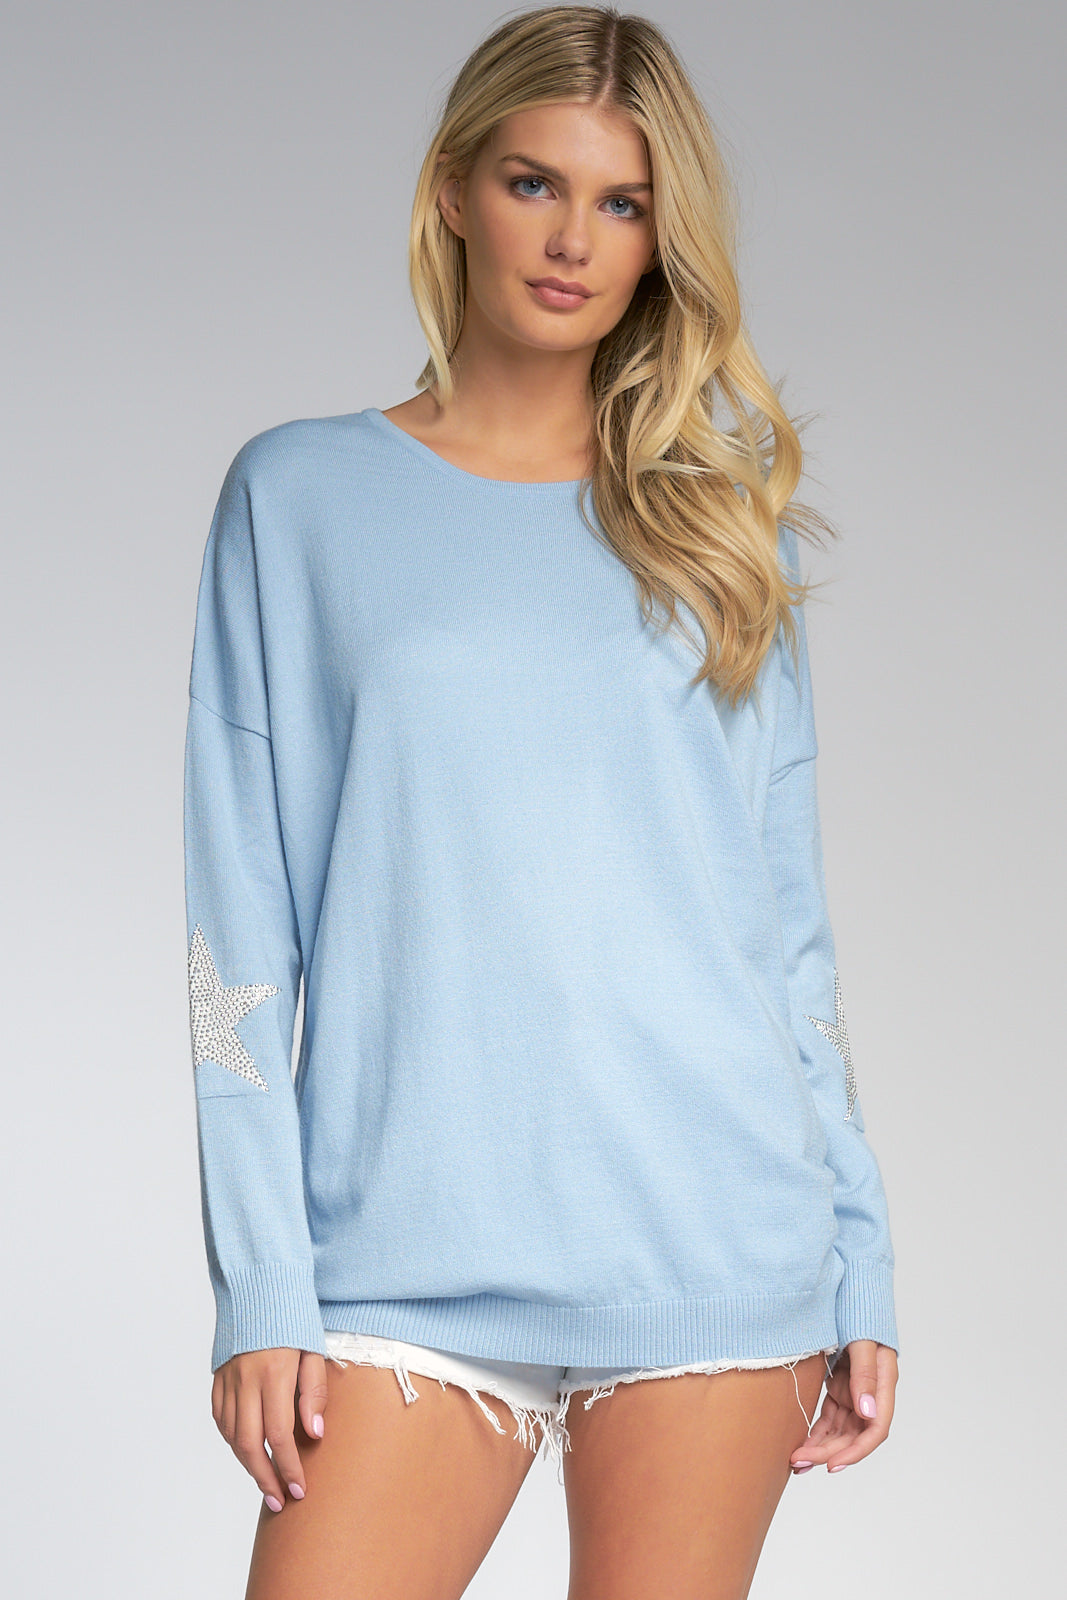 Dusty Blue Oversized Sweater with Silver Stars